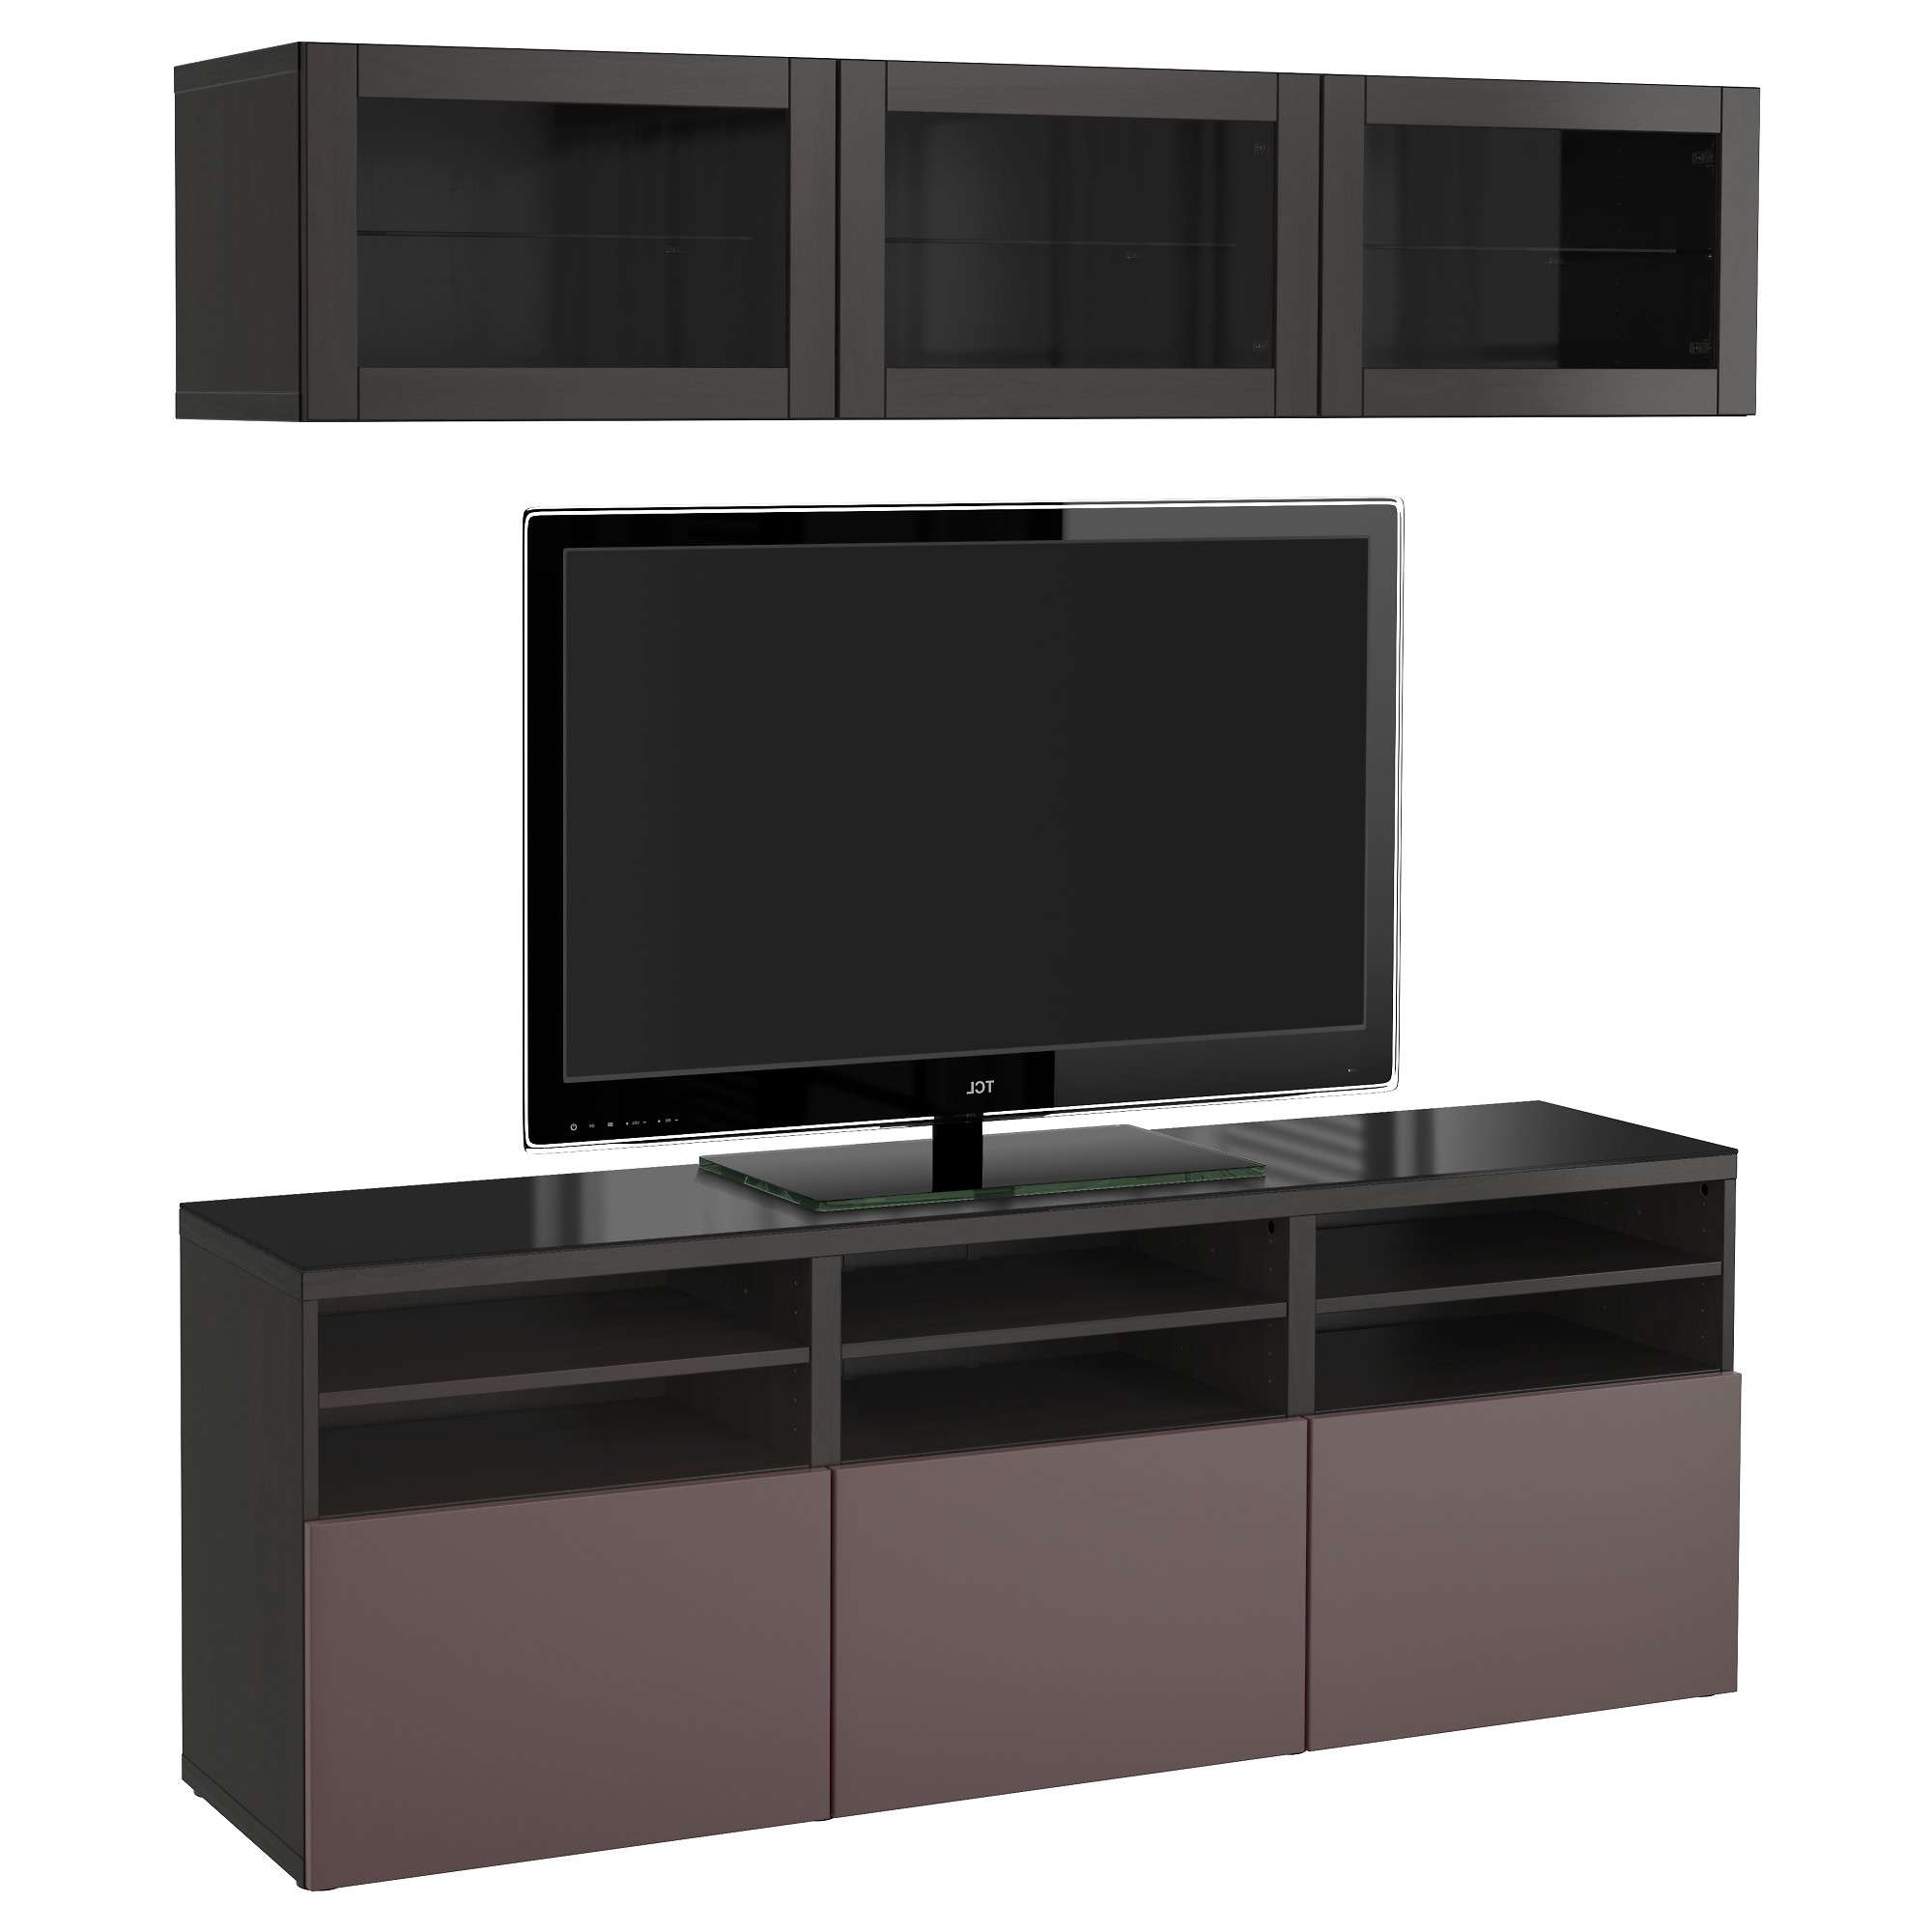 Tv Storage Unit | Tv Wall Units | Ikea For Glass Tv Cabinets (View 18 of 20)